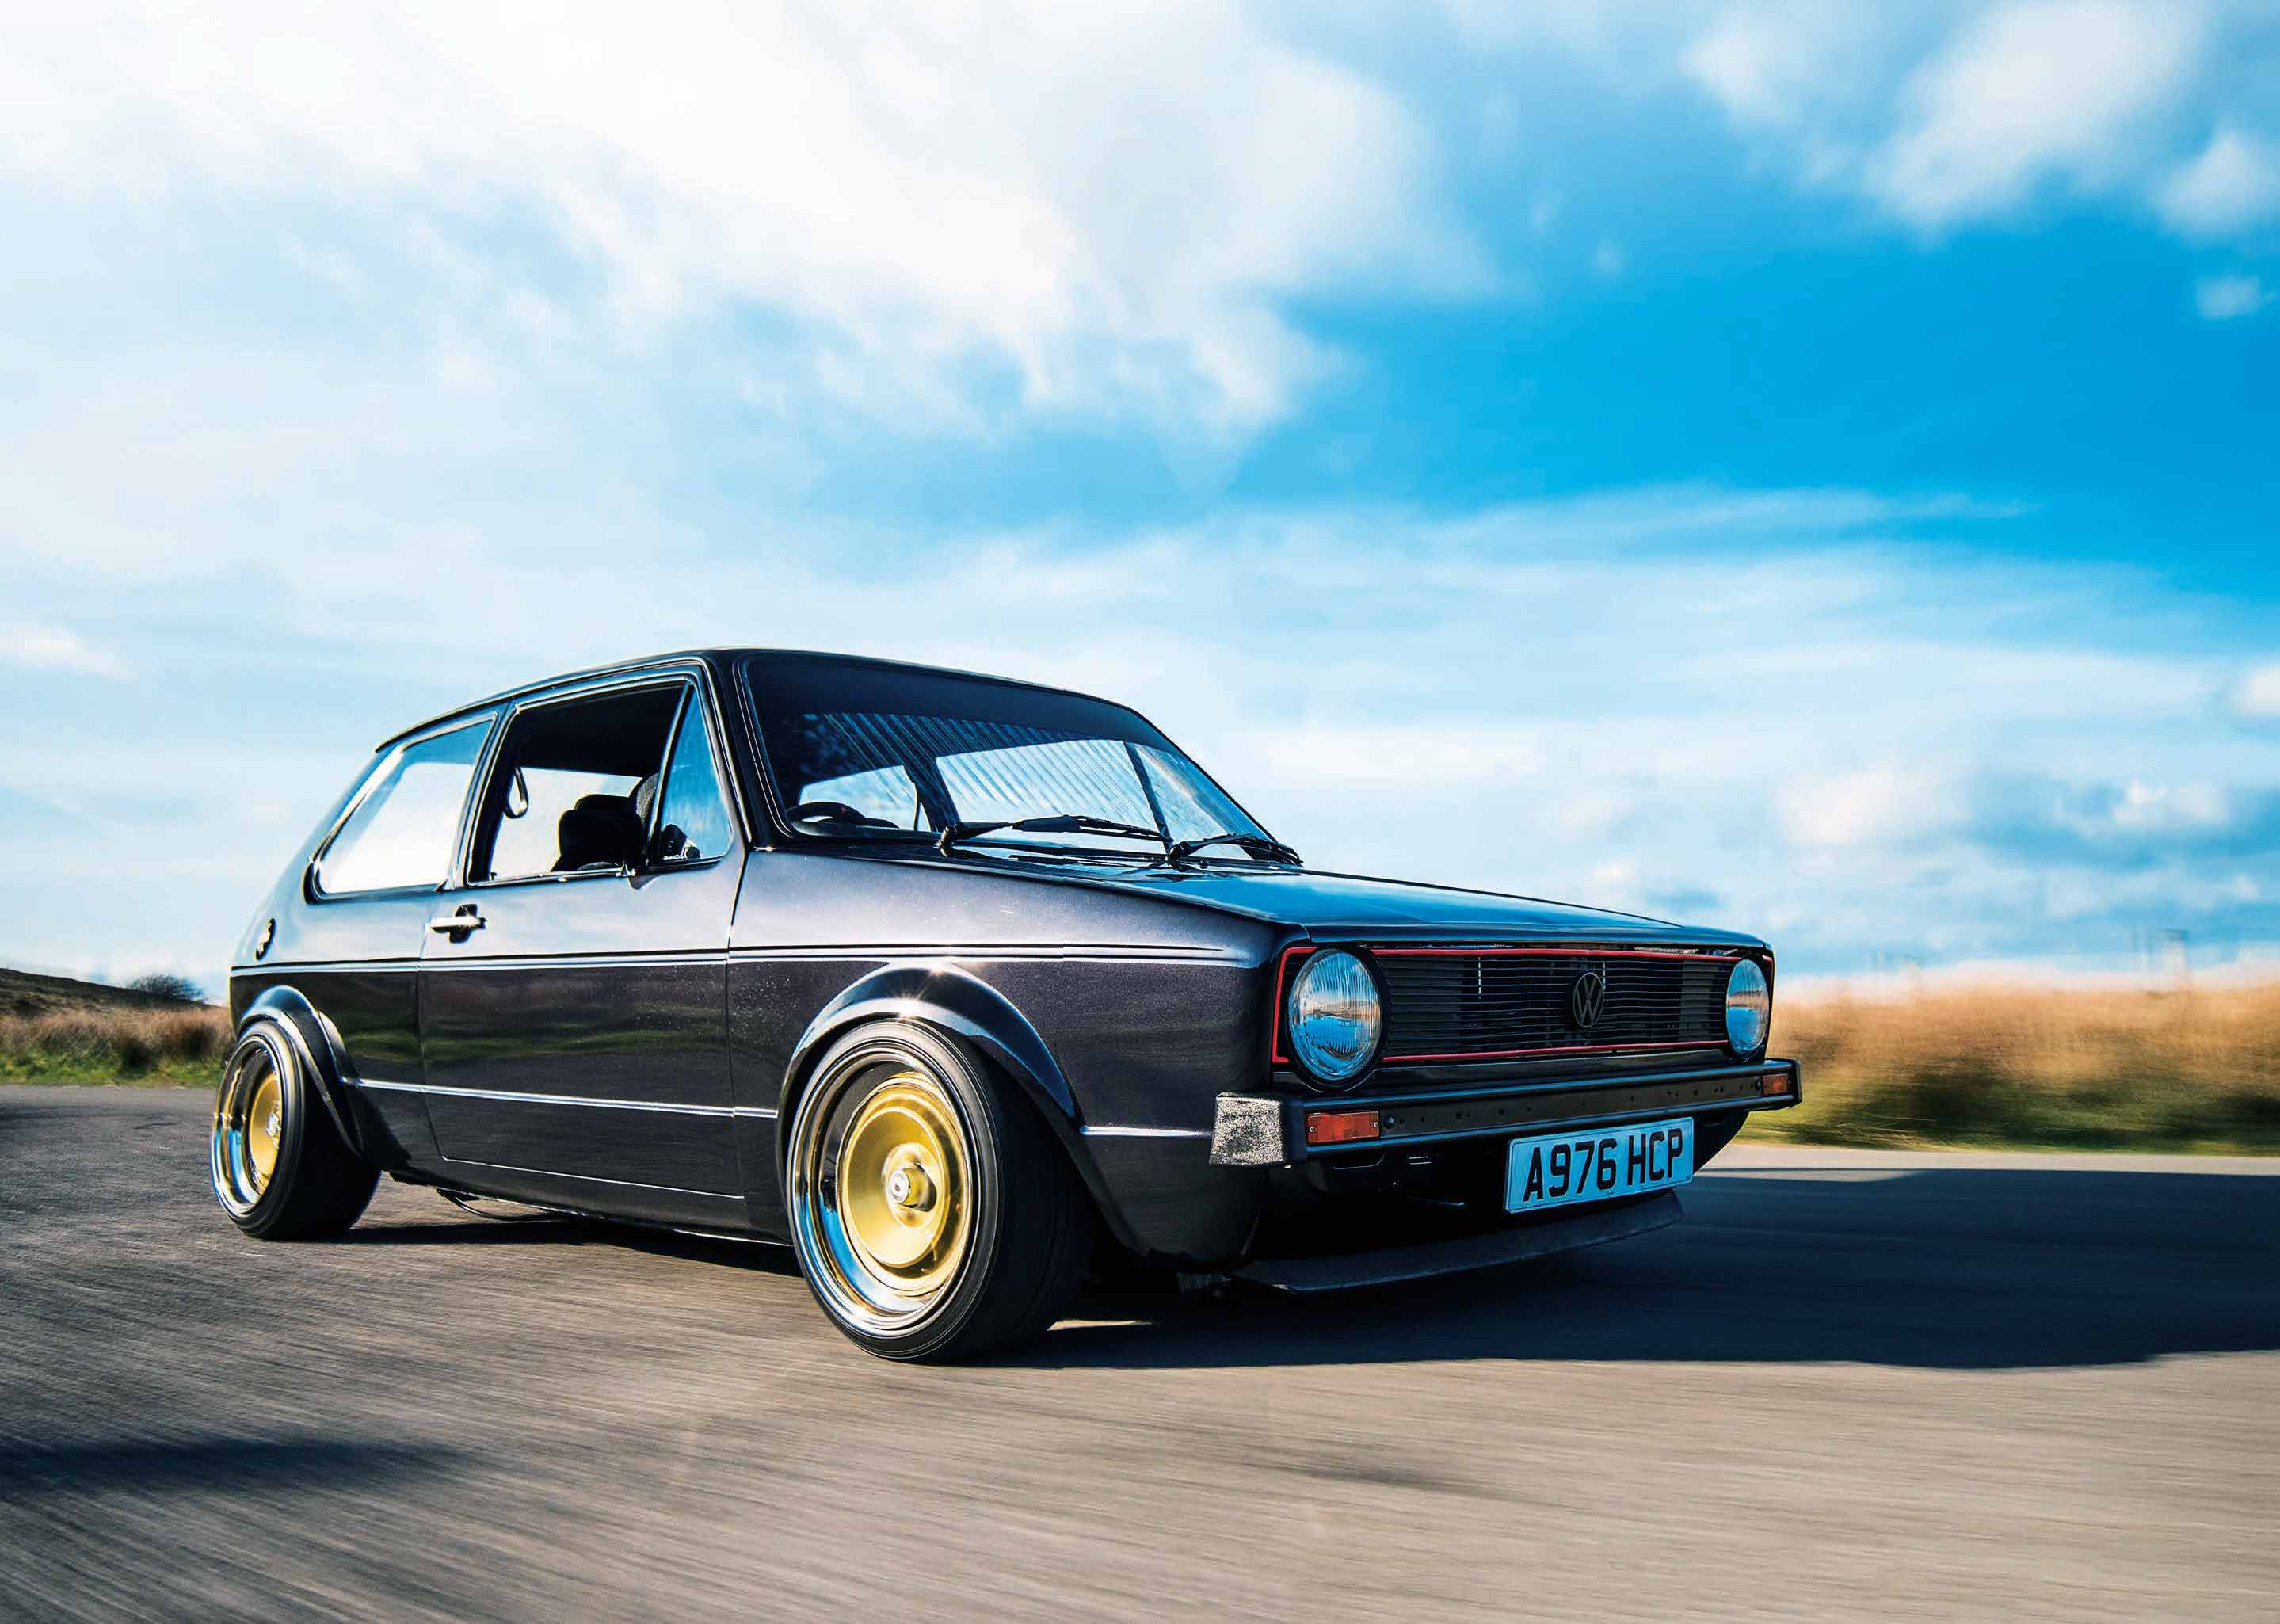 1983 volkswagen golf mk1 with bam 1 8t swap drive my blogs drive. Black Bedroom Furniture Sets. Home Design Ideas